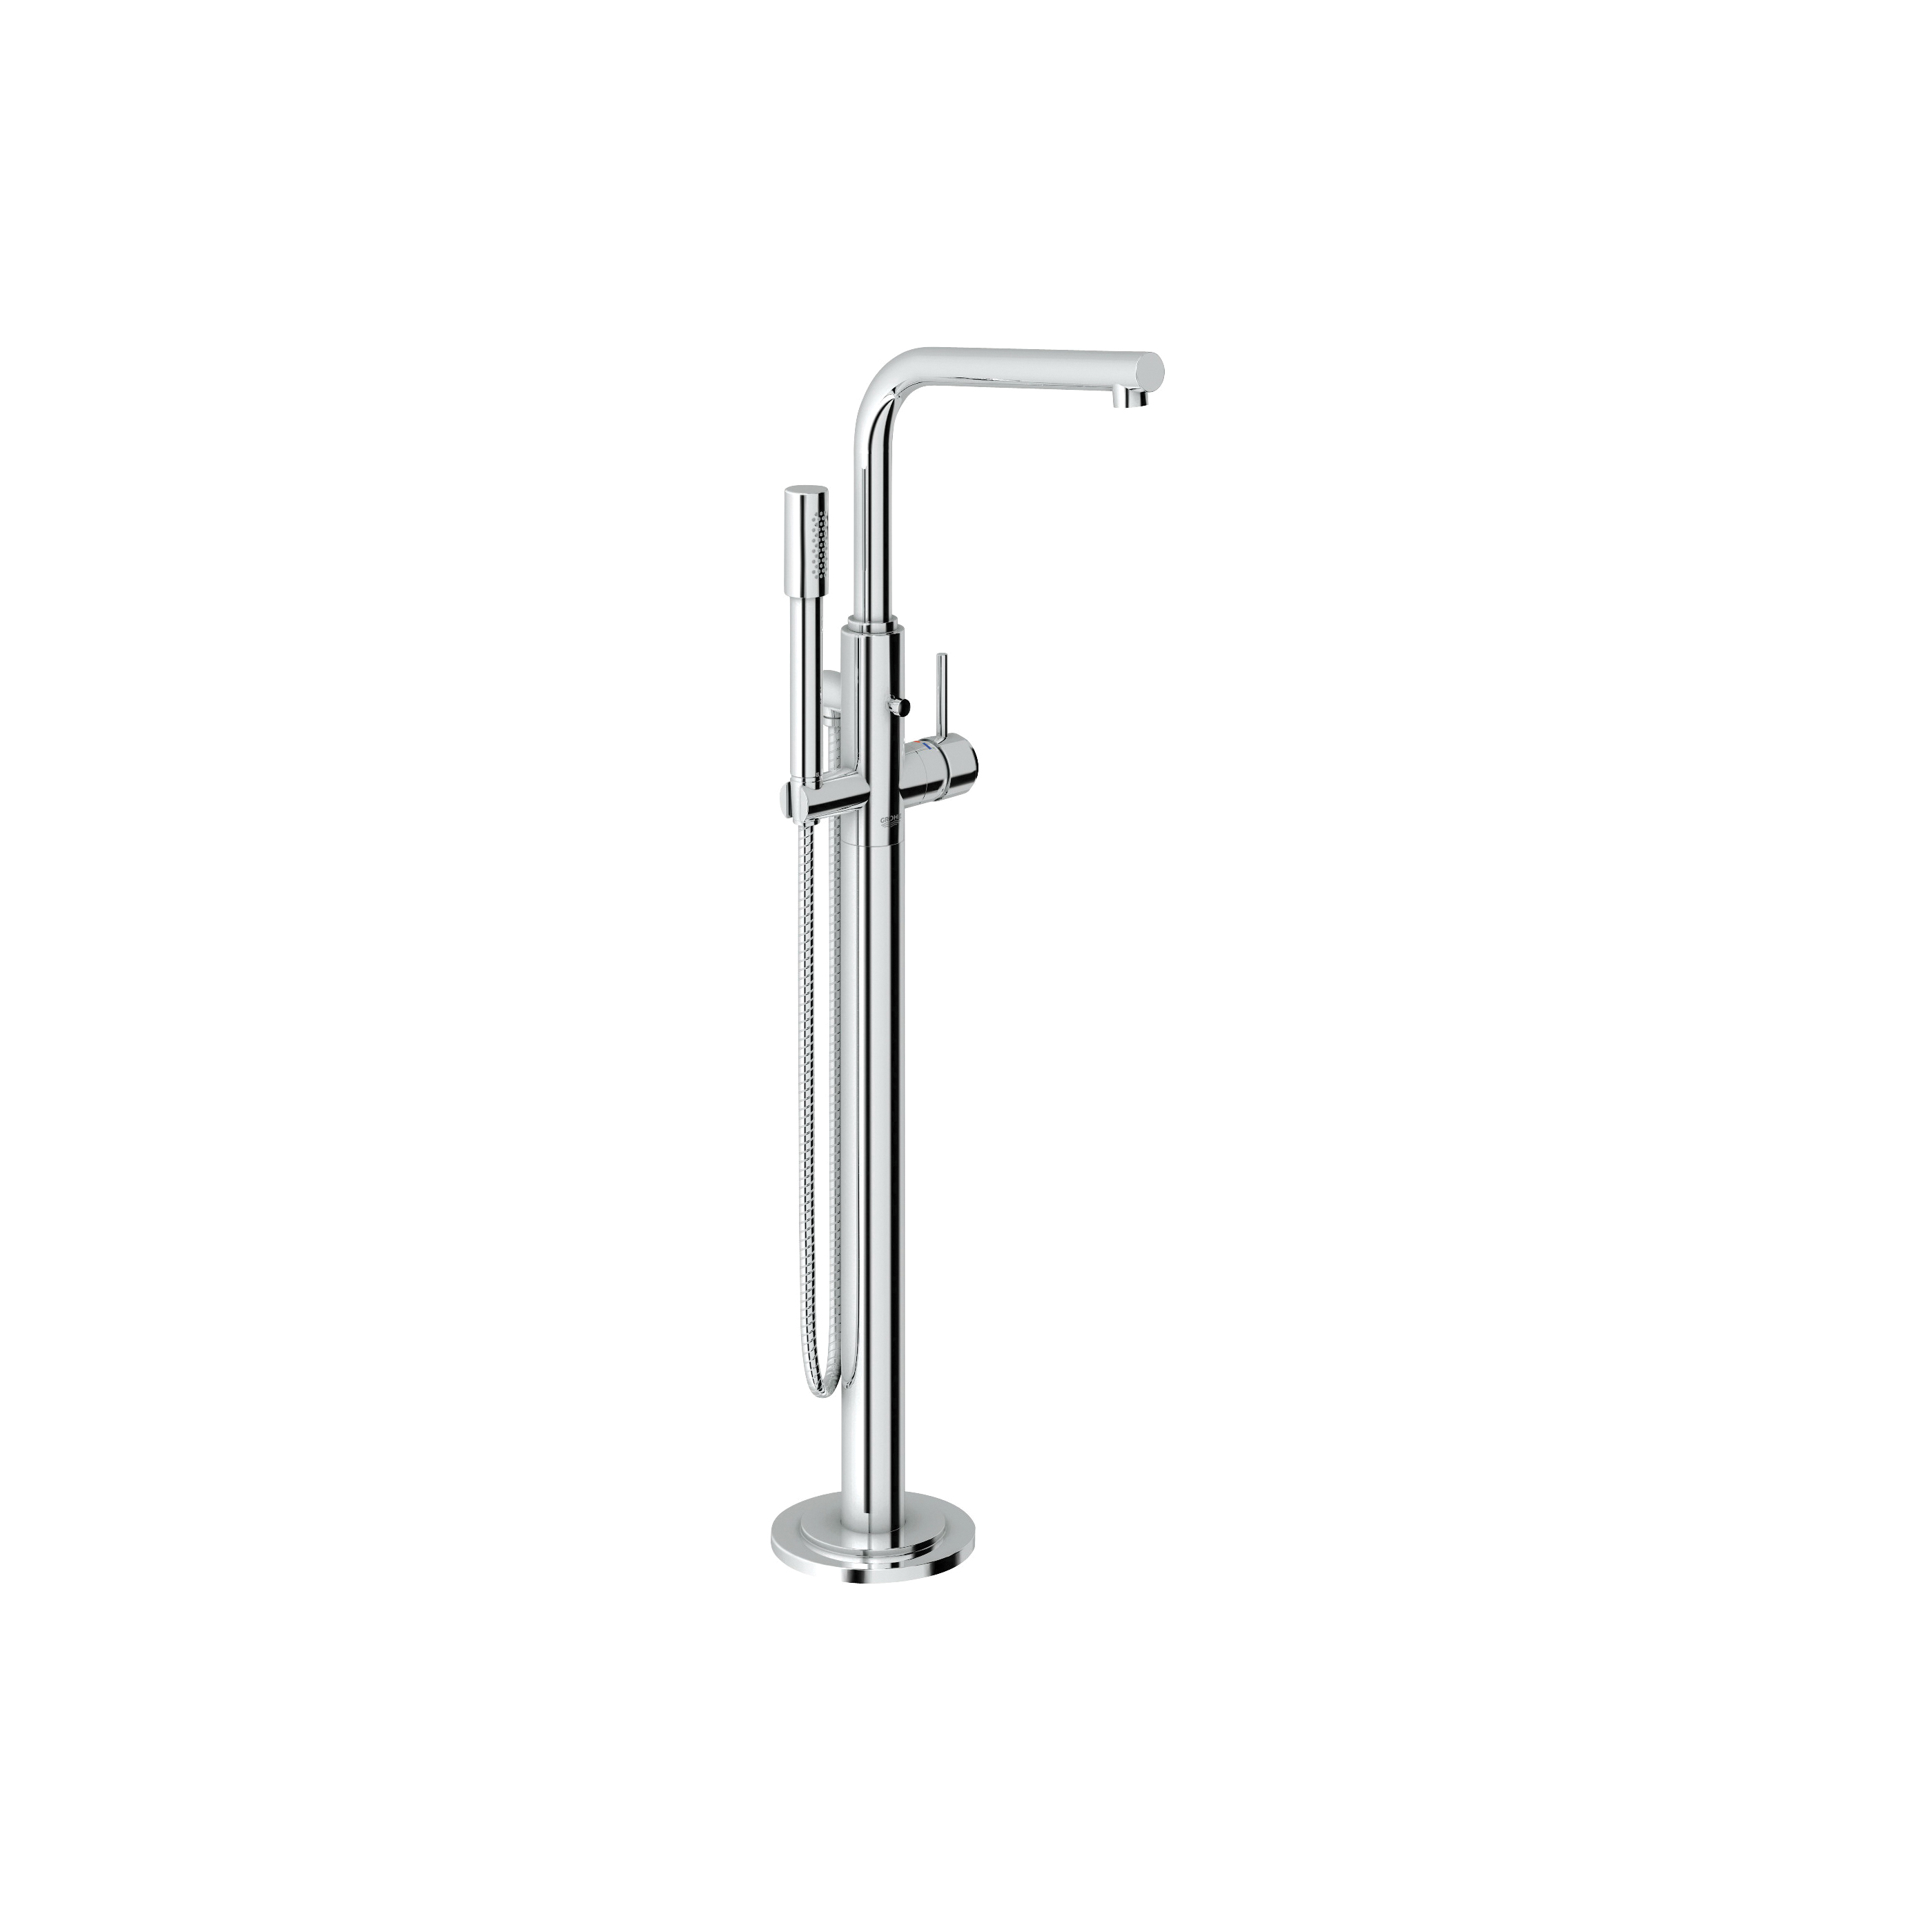 GROHE 32135002 Atrio® Tub Filler, 2.5 gpm, StarLight® Chrome Plated, 1 Handles, Hand Shower Yes/No: Yes, Import